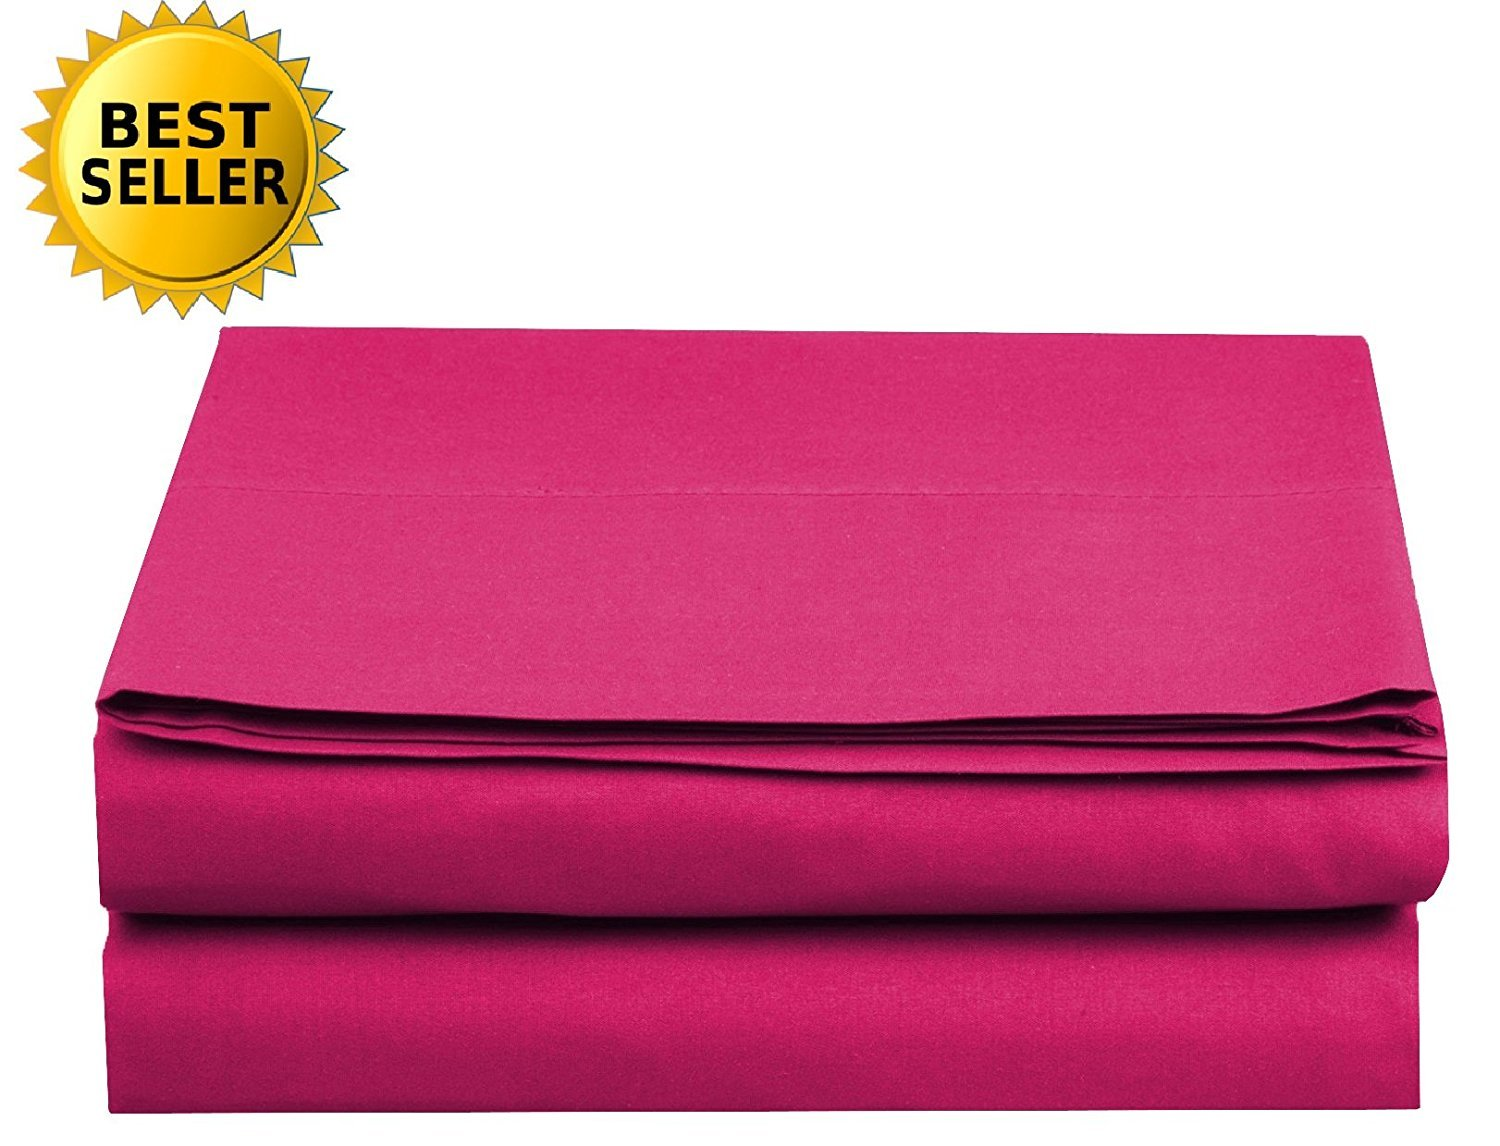 Luxury Fitted Sheet on Amazon! - HIGHEST QUALITY Elegant Comfort Wrinkle-Free 1500 Thread Count Egyptian Quality 1-Piece Fitted Sheet, King Size, Pink